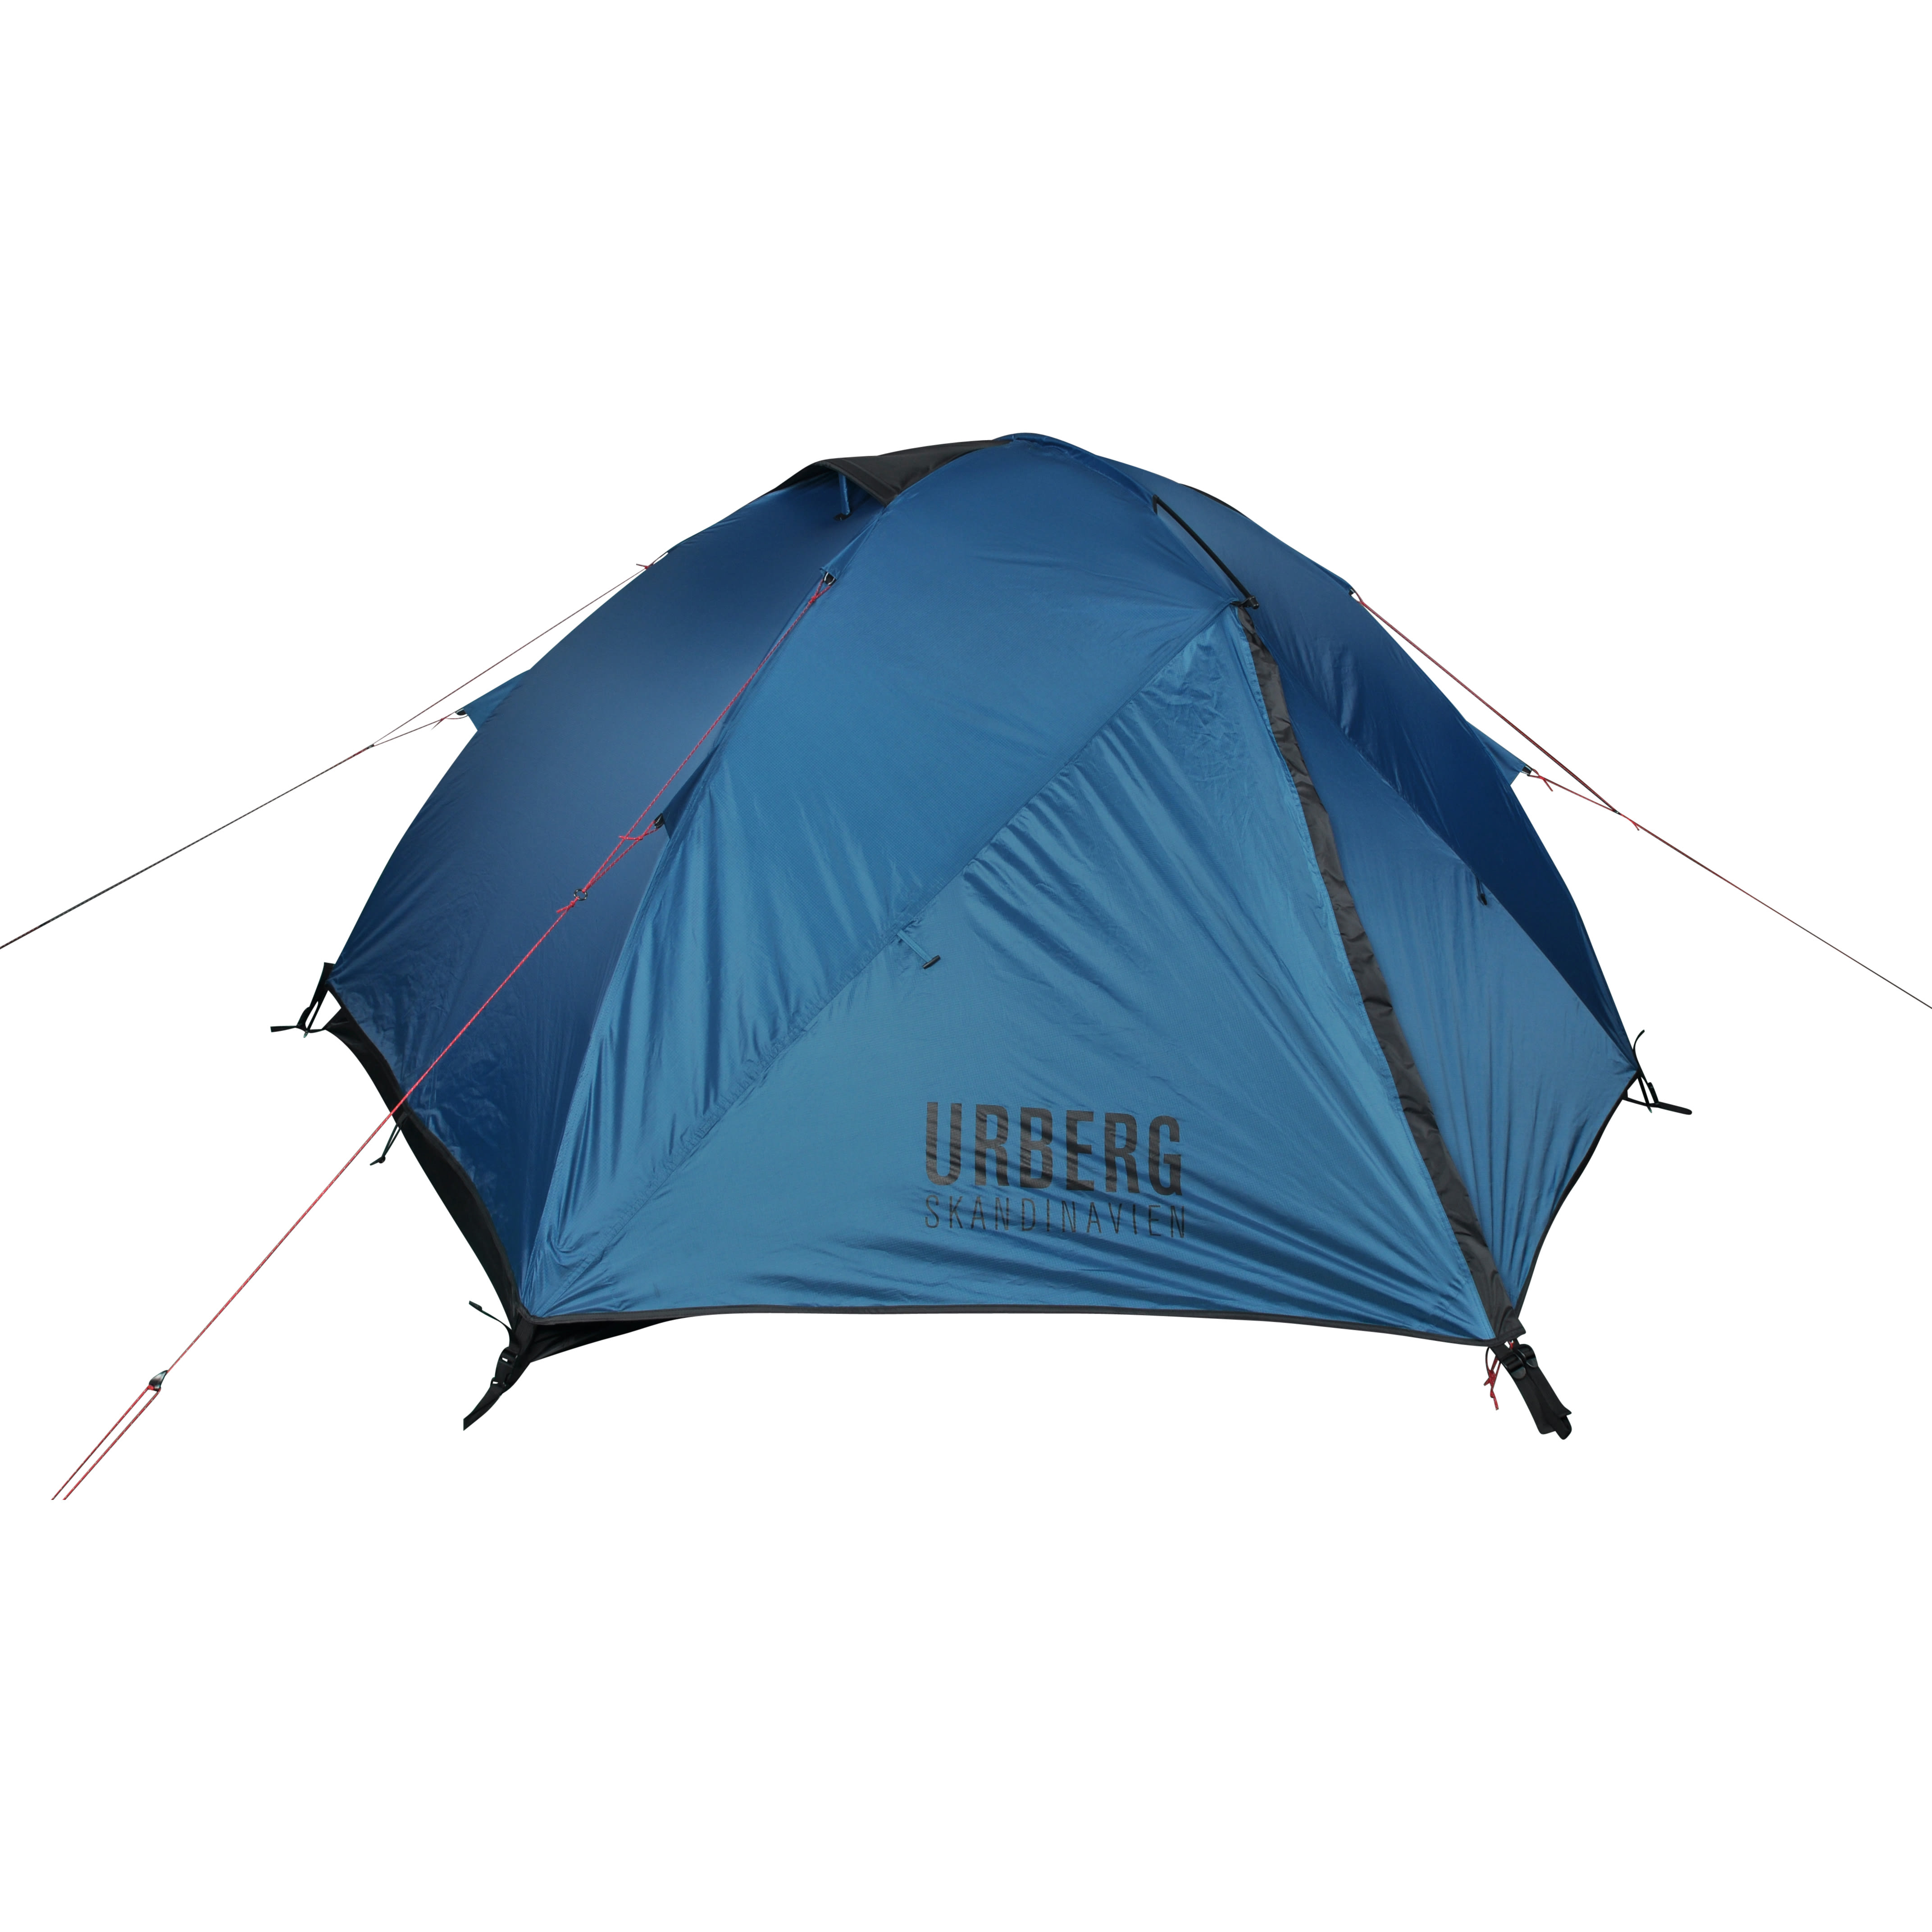 Urberg - 2-Person Dome Tent G2